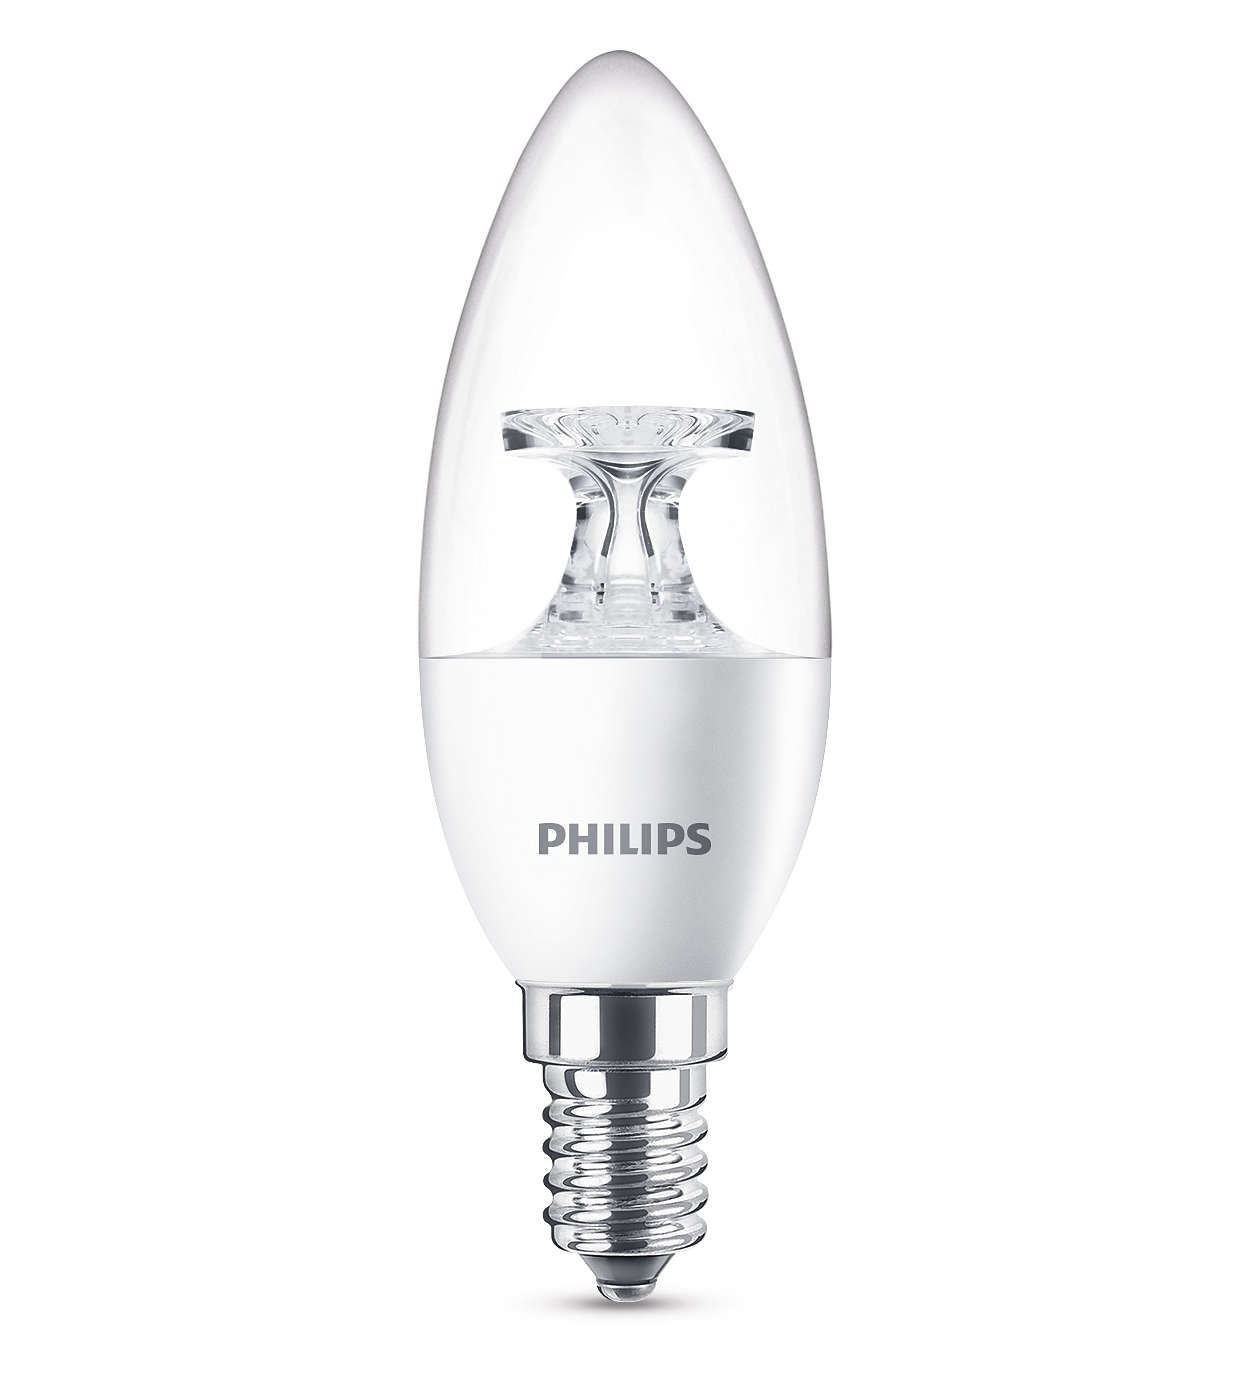 8718696454770 Philips LED Leuchtmittel E14 LED Kerze 5,5W ~ 40W